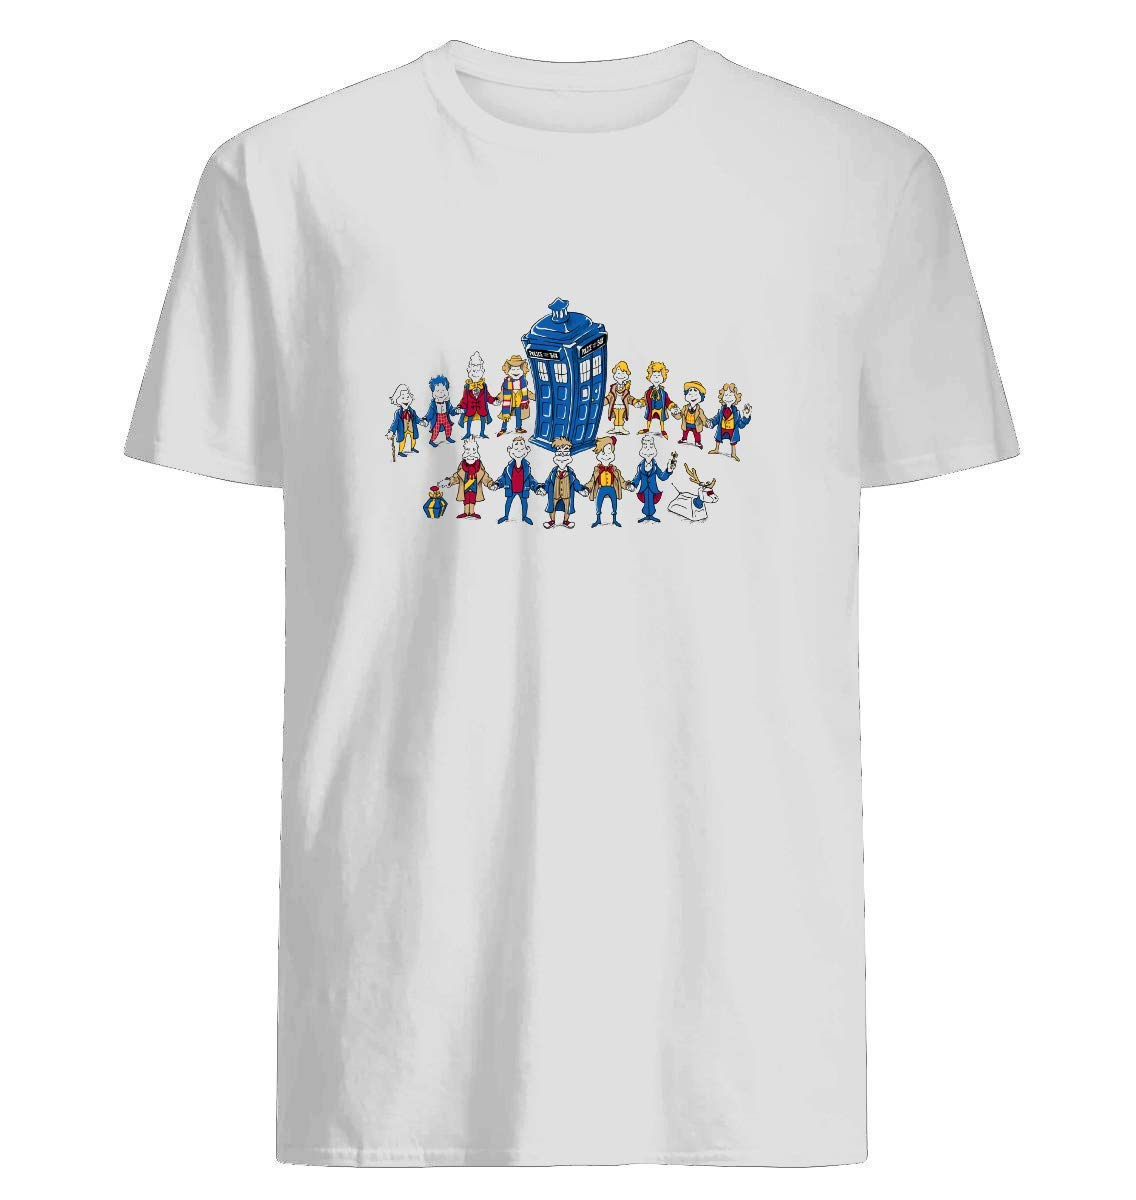 Doctor Whoville Holiday Christmas Shirt 53